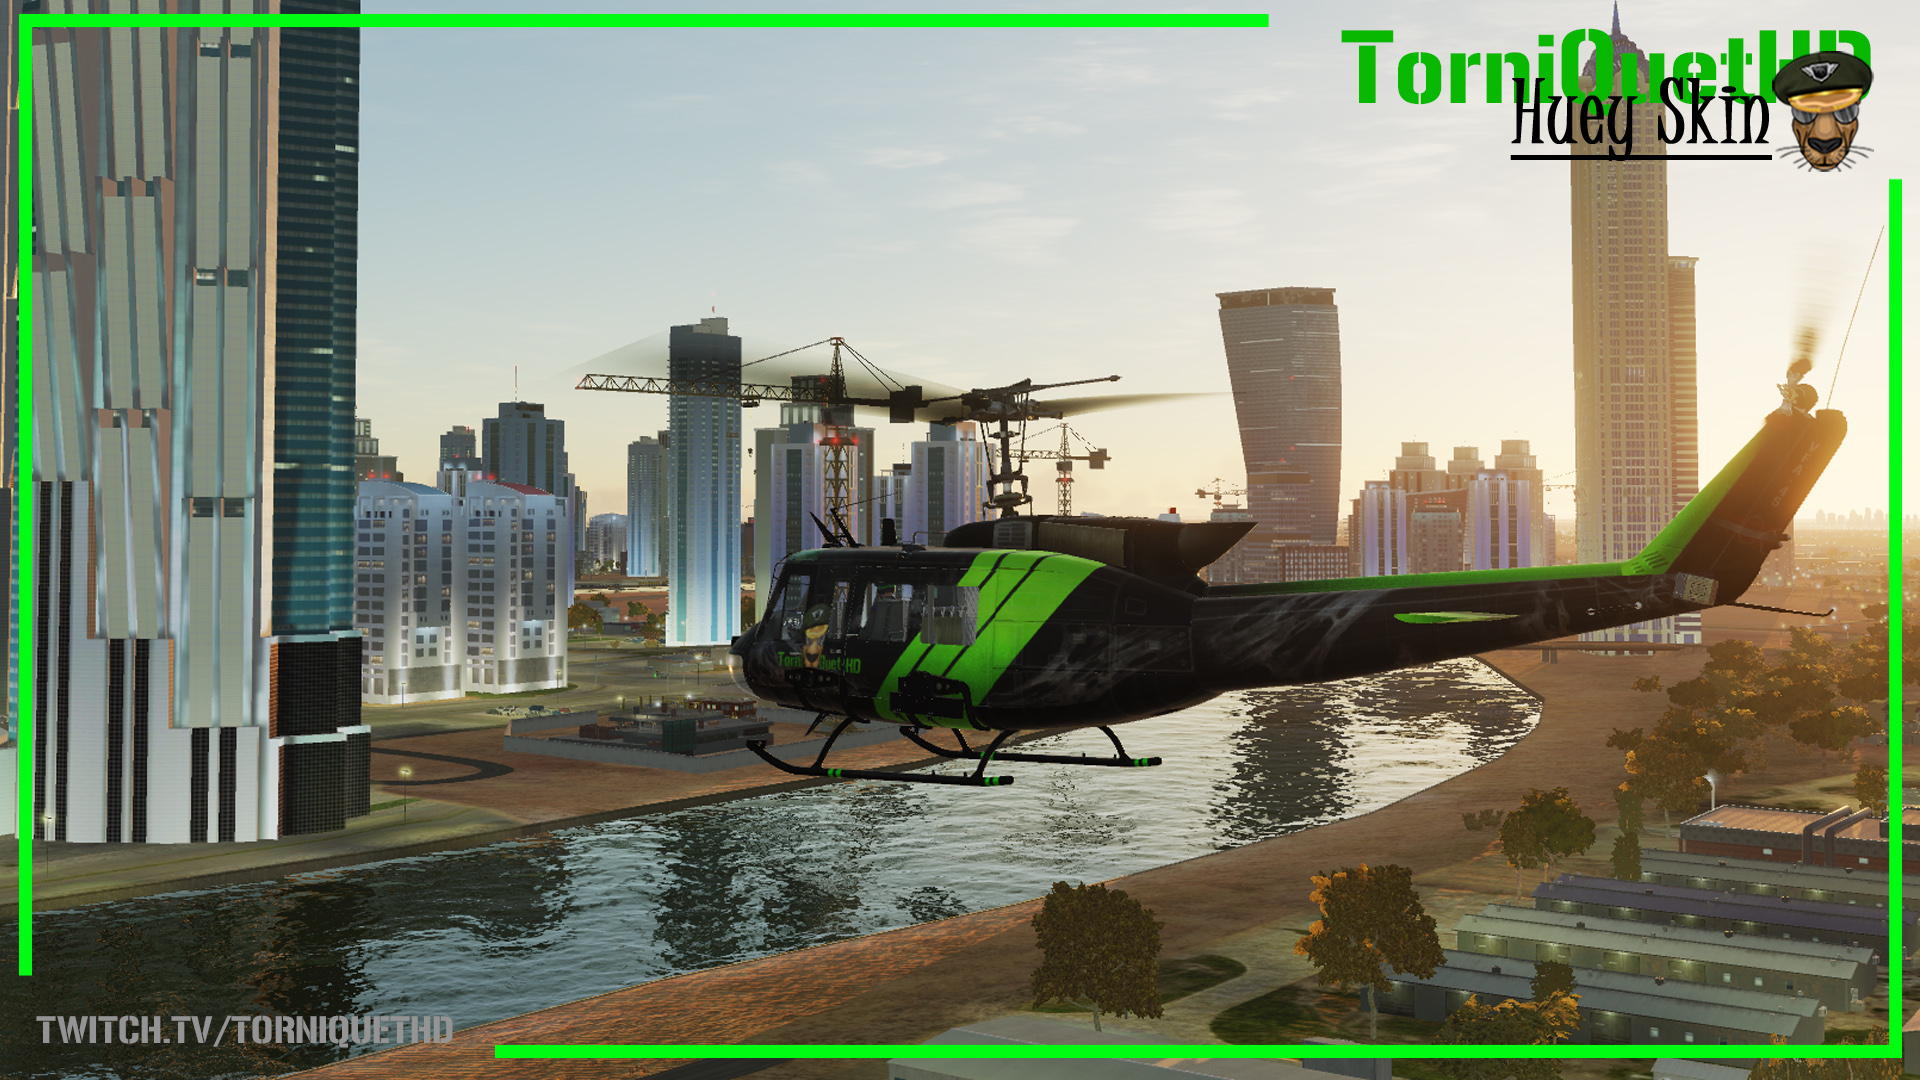 The Official TorniQuet-HD Huey Skin V 1.1 (updated 5/3/20) just for MINSKY